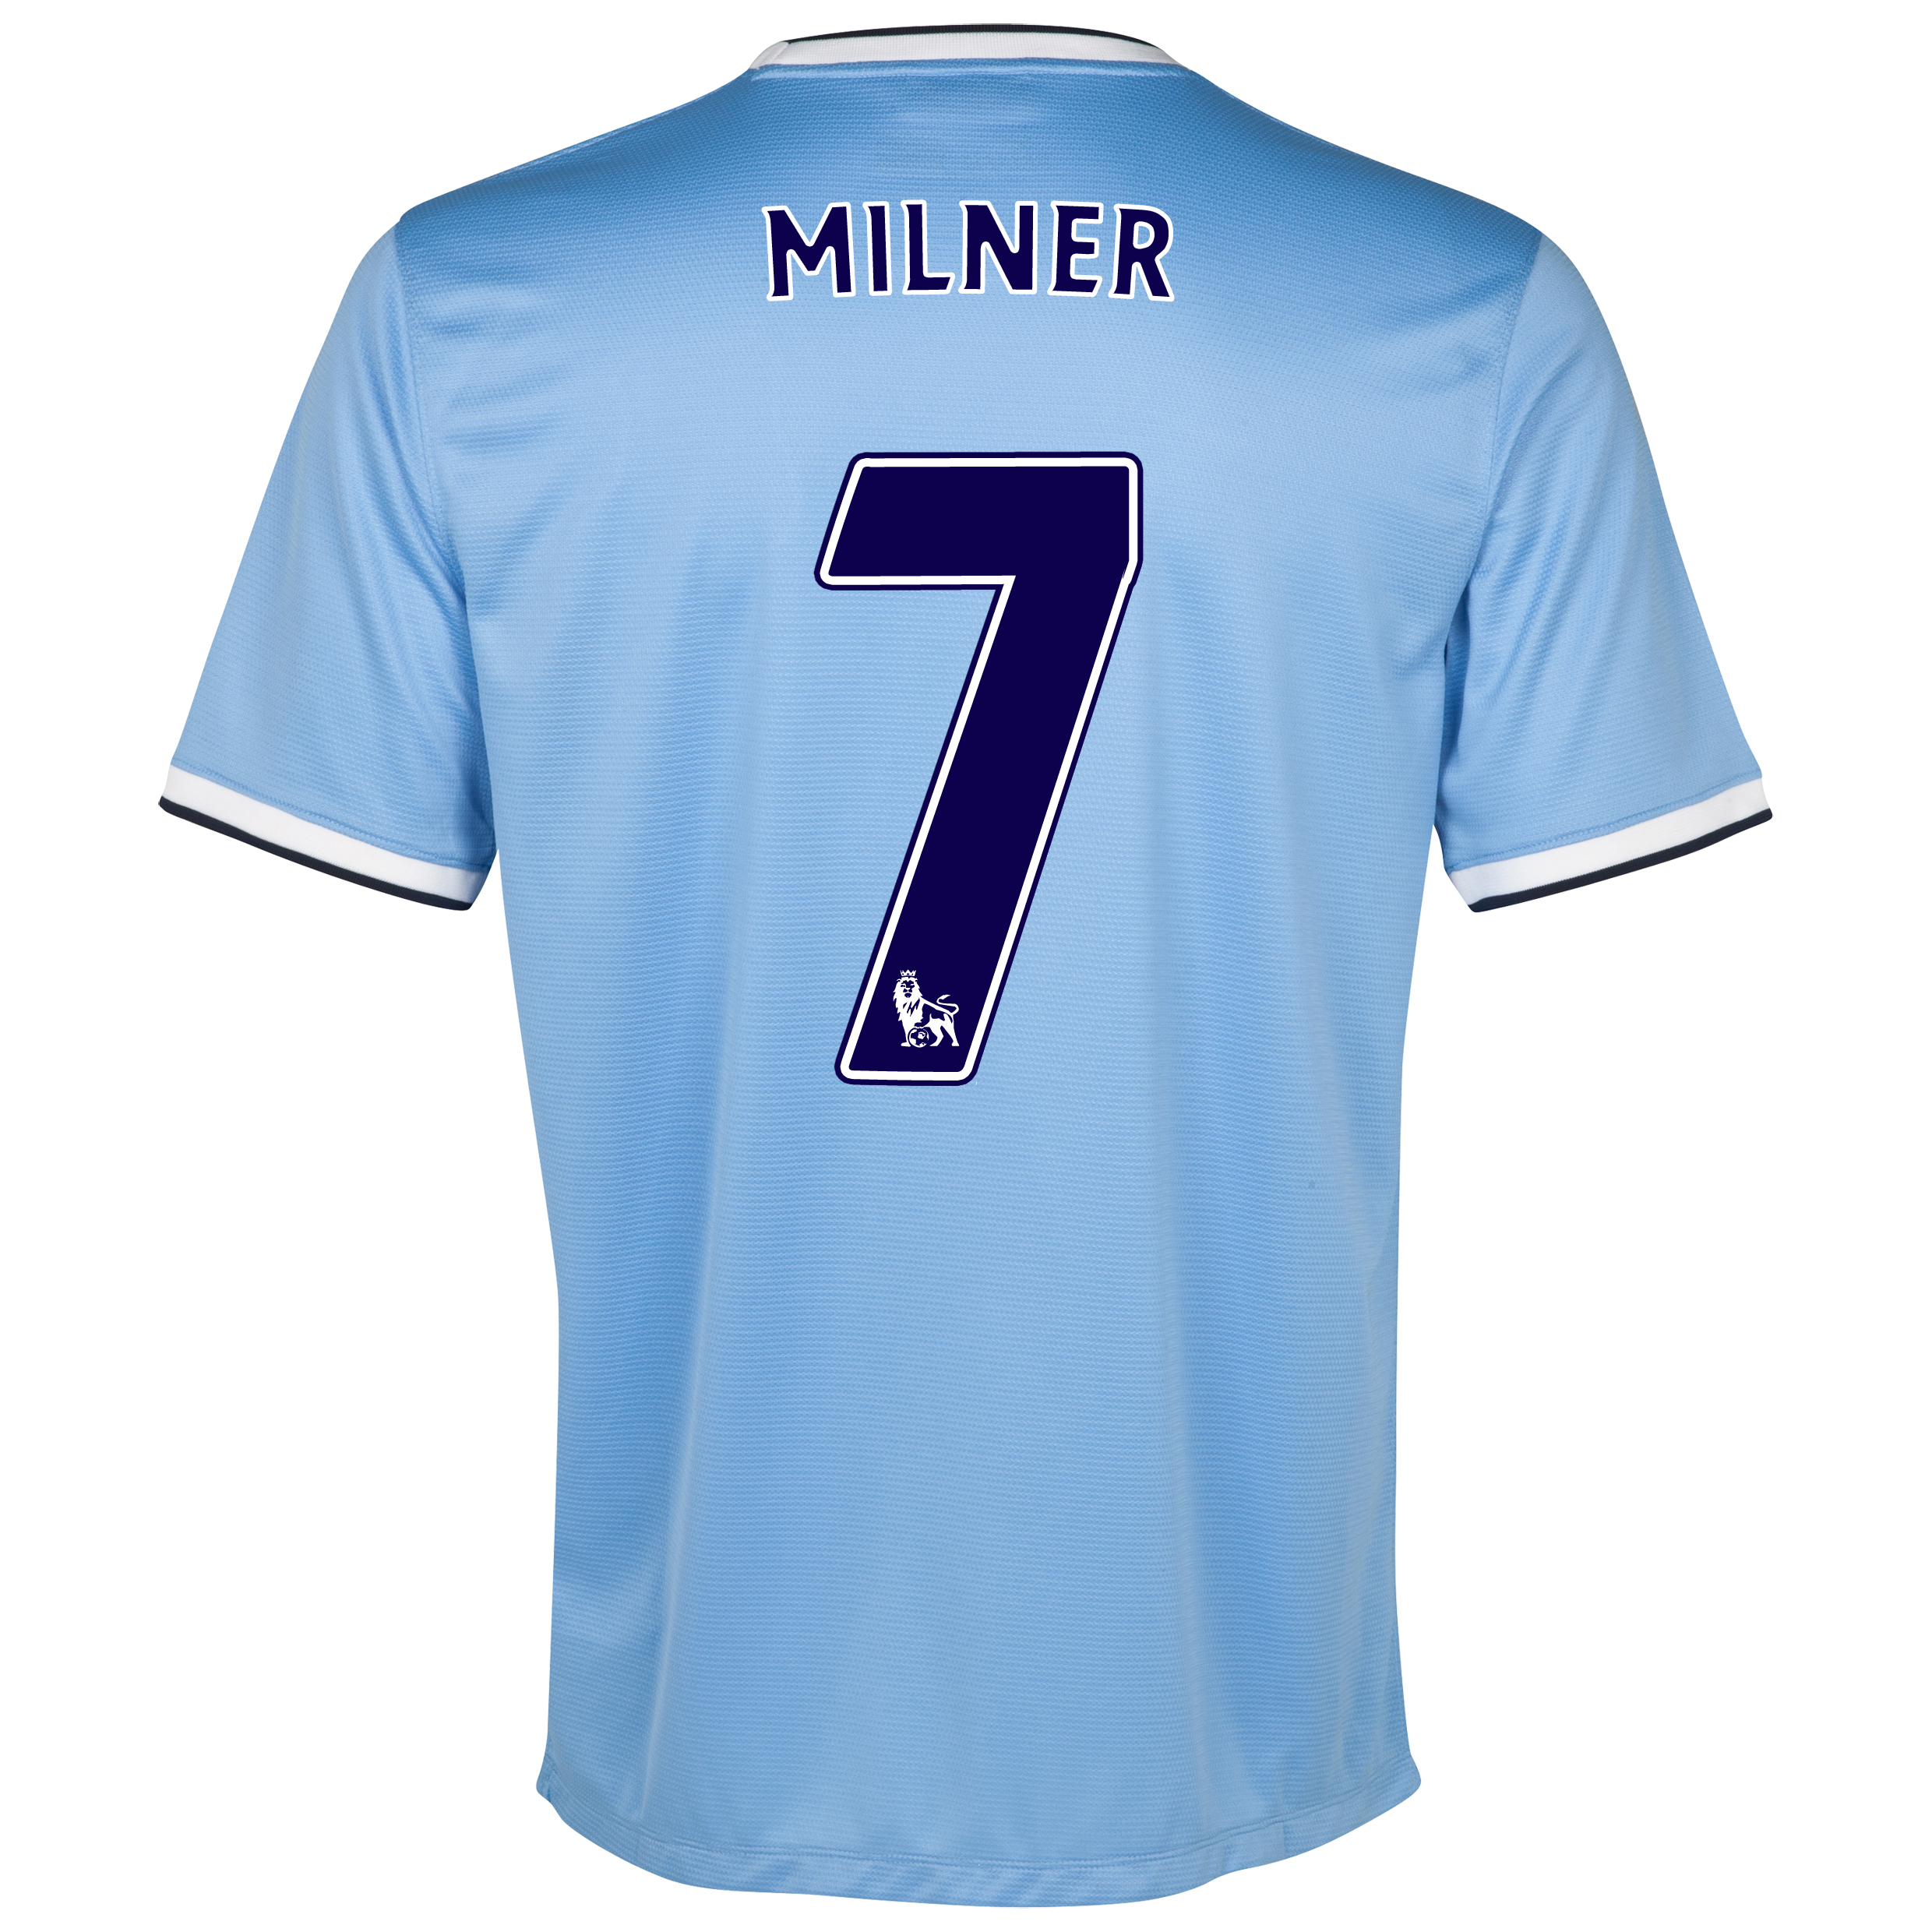 Milner hero shirts